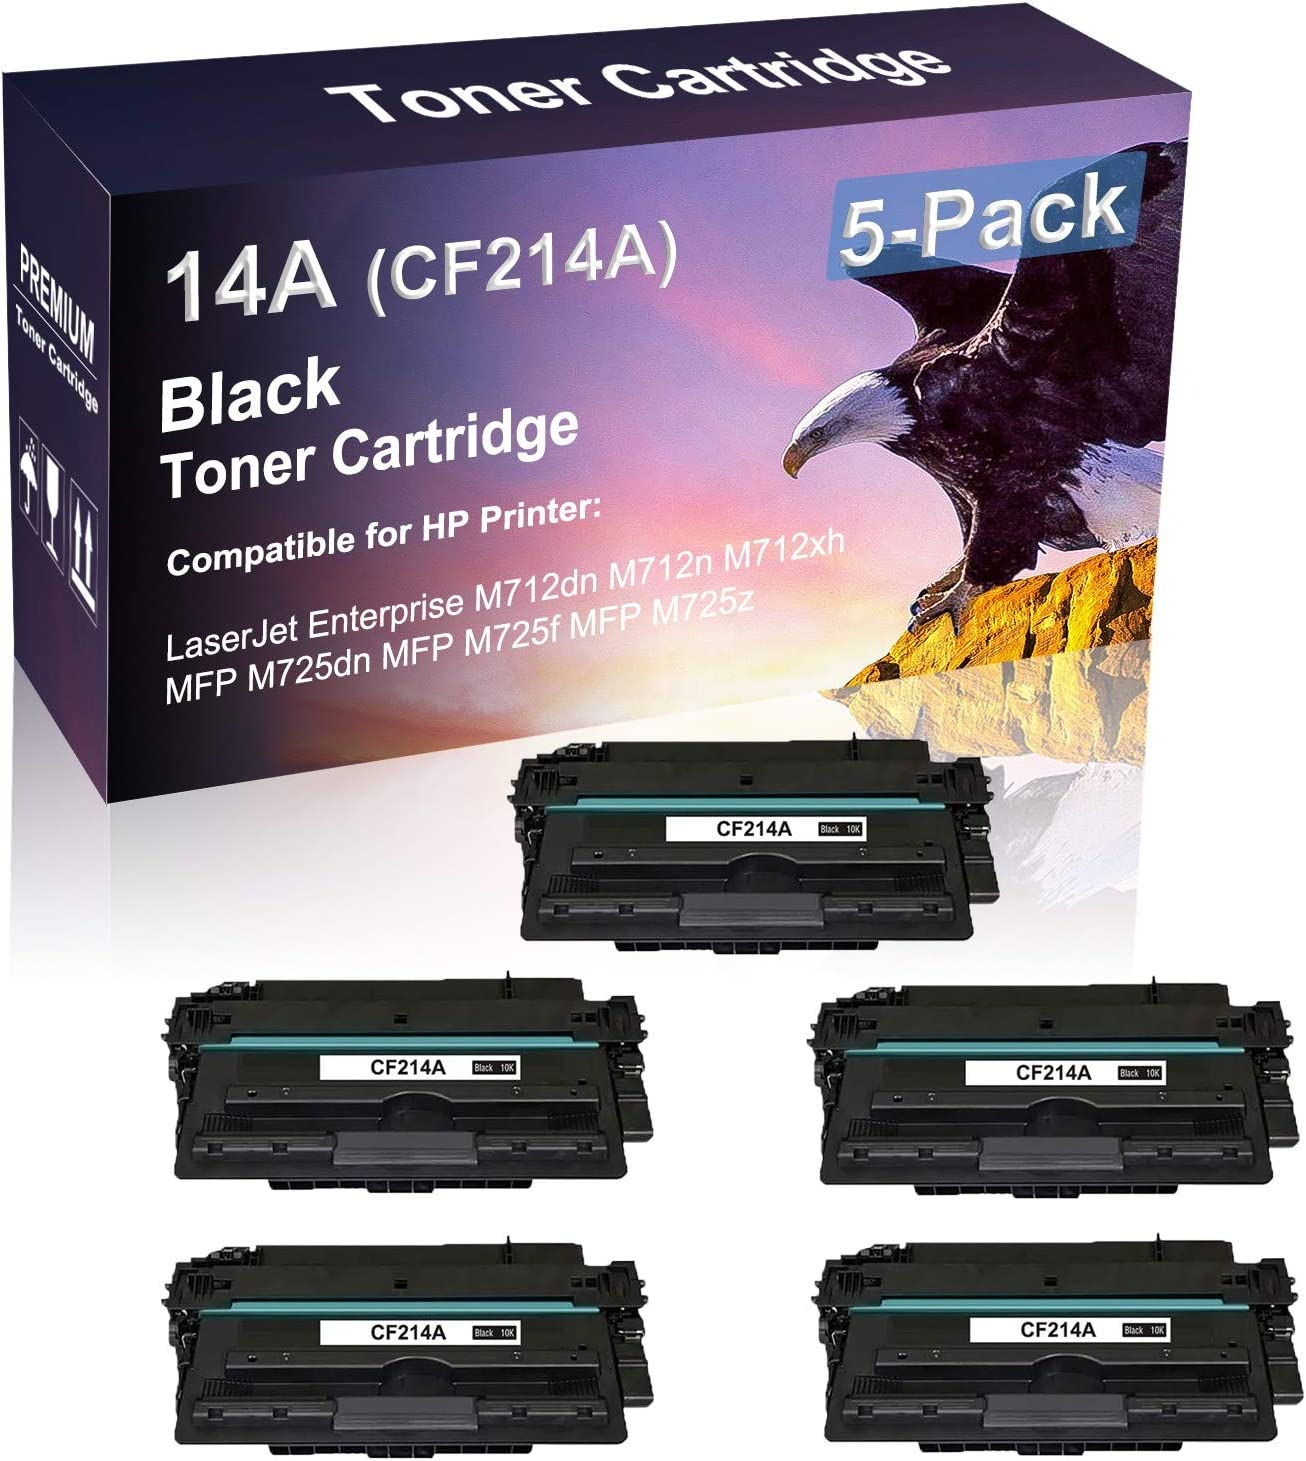 Replacement for HP 14A CF214A Imaging Cartridge for HP Laserjet Pro Enterprise M712dn M712n M712xh Printer High Yield Black Compatible Laser Printer Cartridge 5 Pack